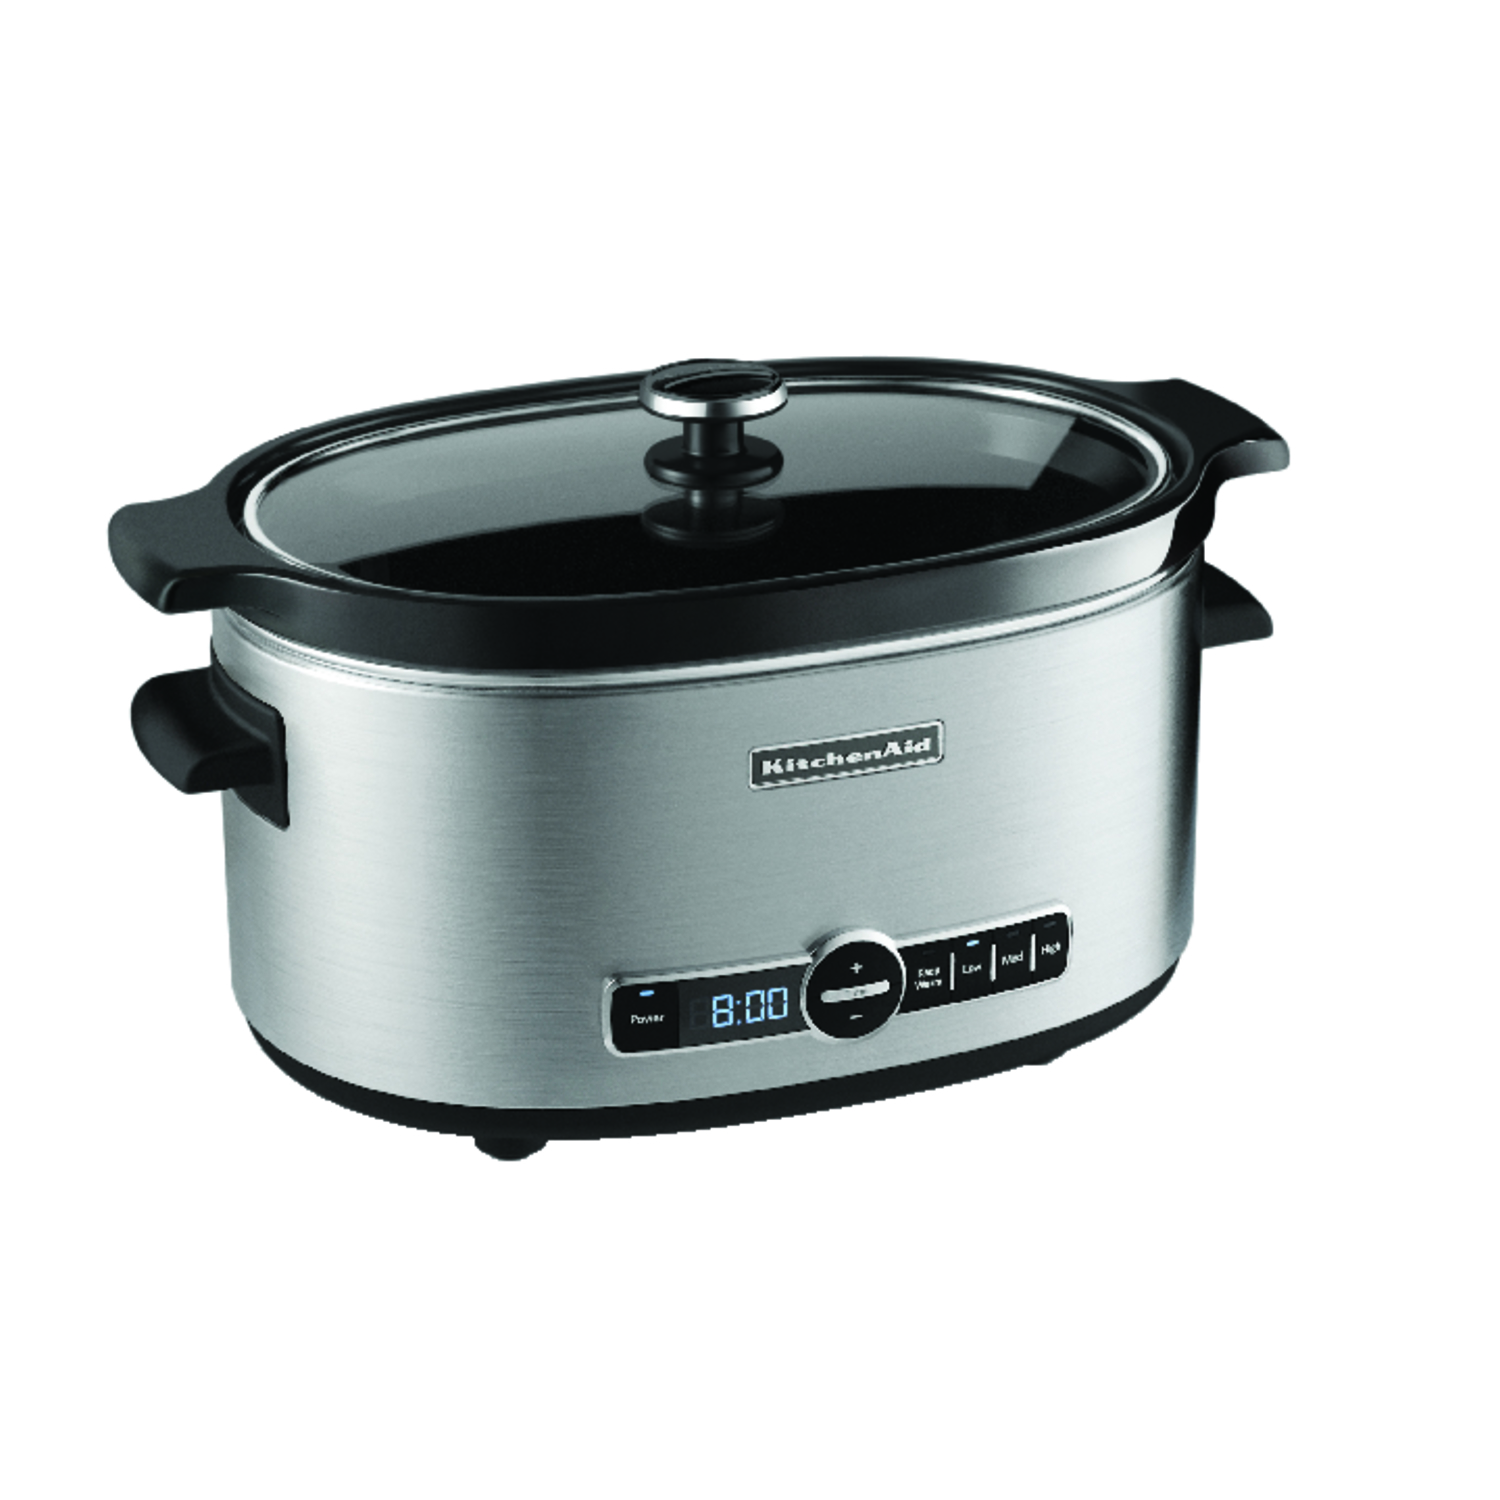 Kitchenaid Slow Cooker 6 qt. Glass Lid - Ace Hardware